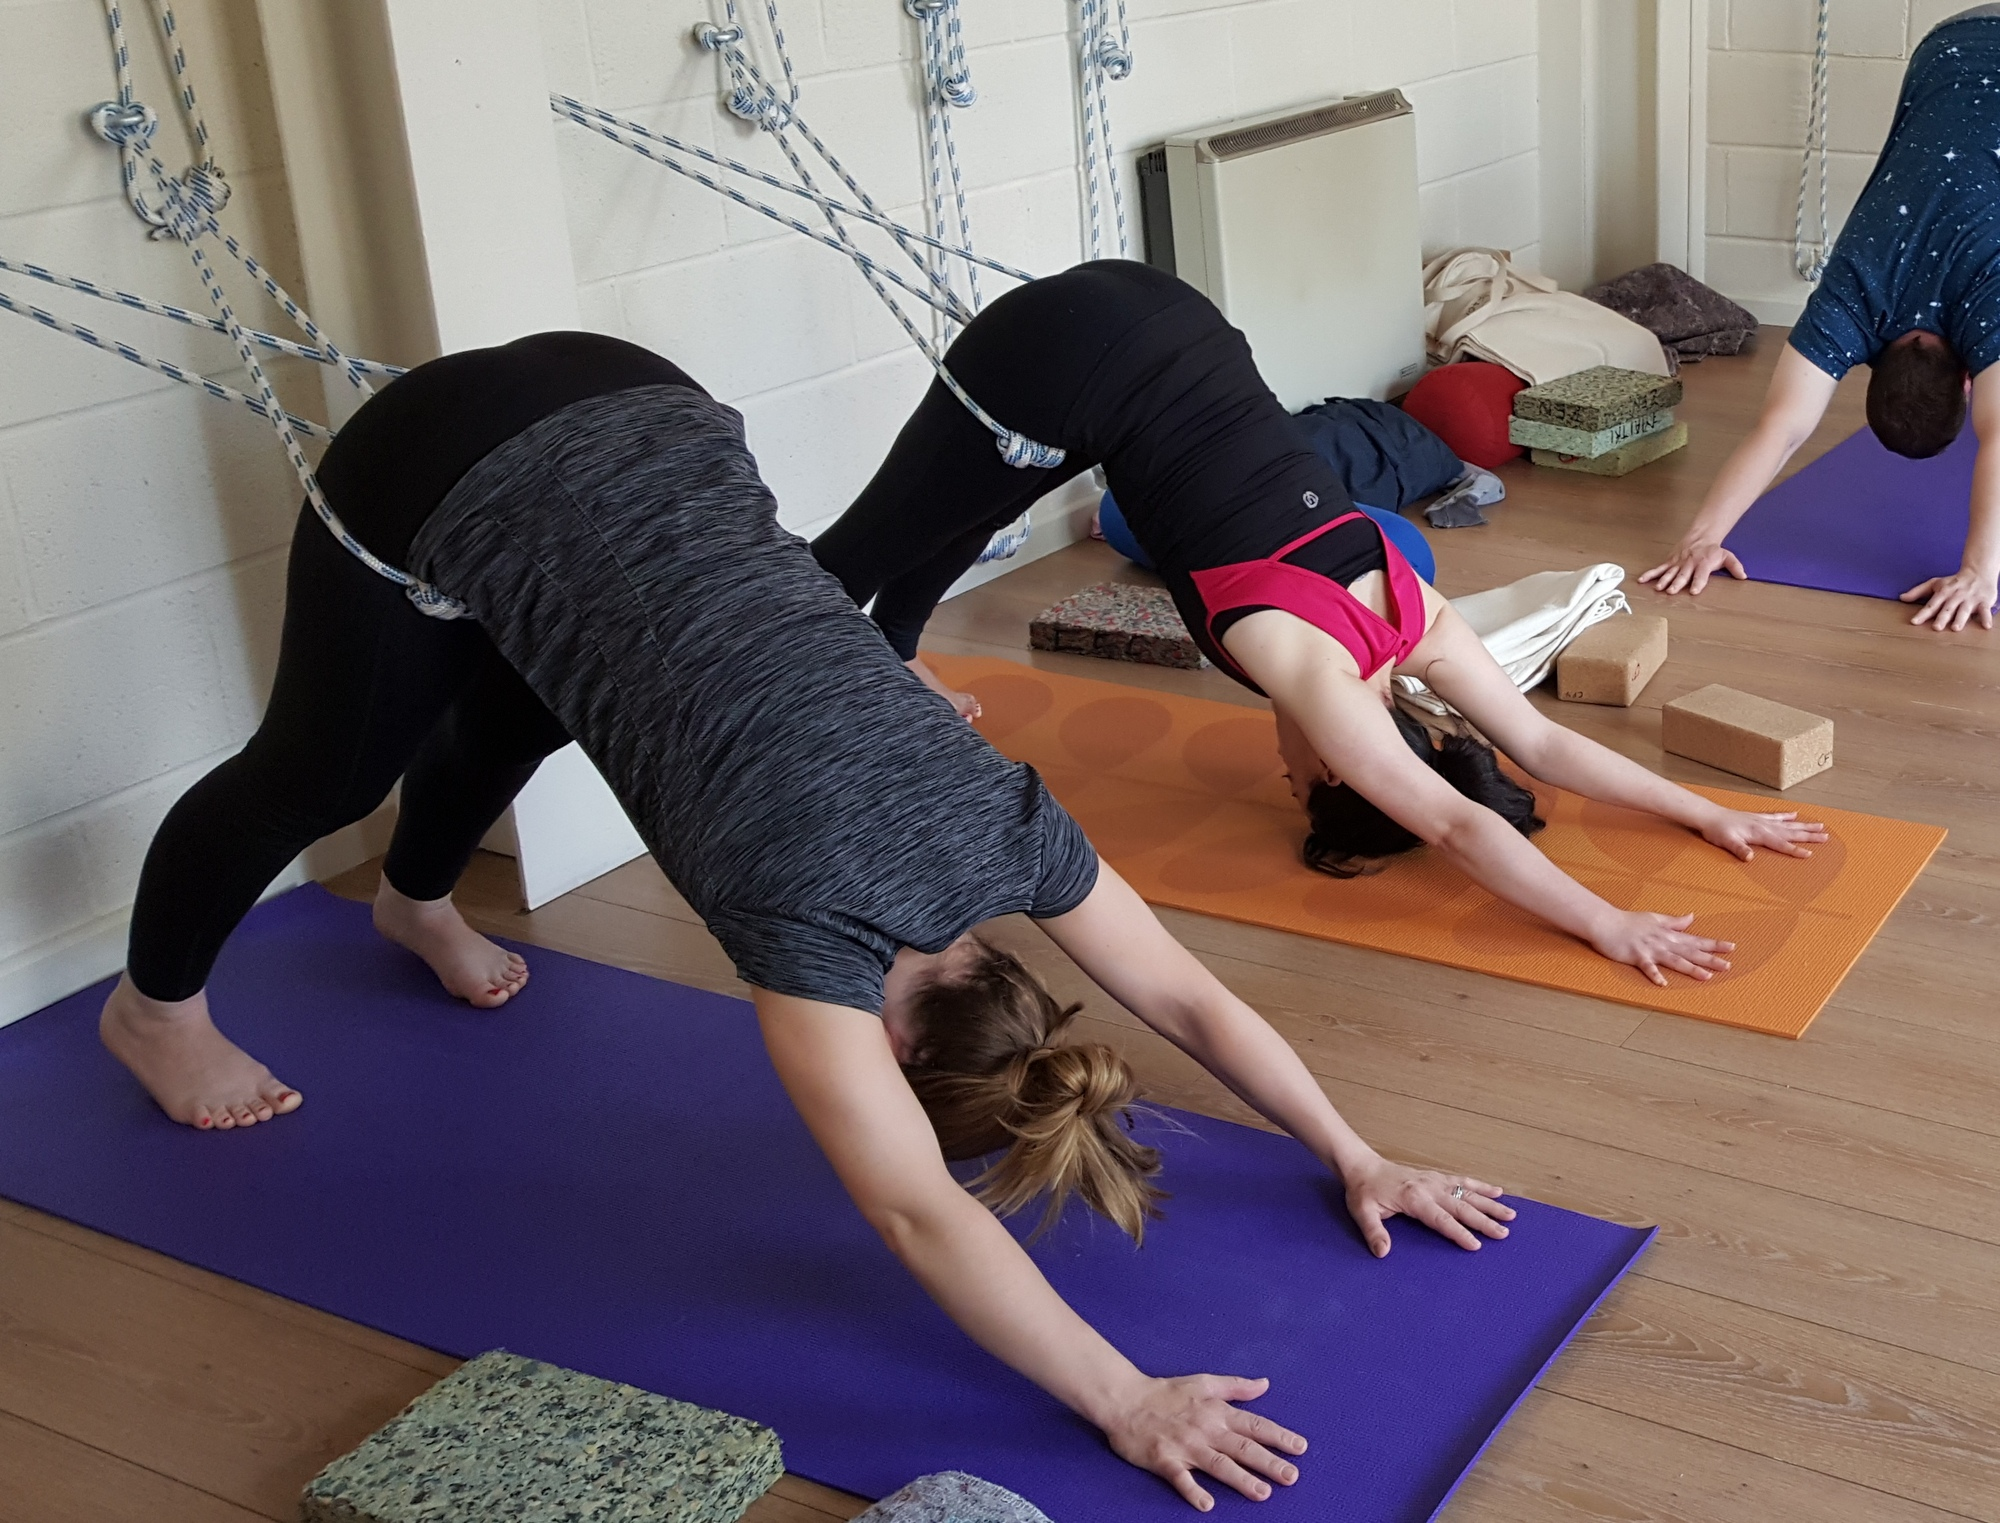 LEARNING THE ROPES - DOWNWARD DOG AT A WORKSHOP